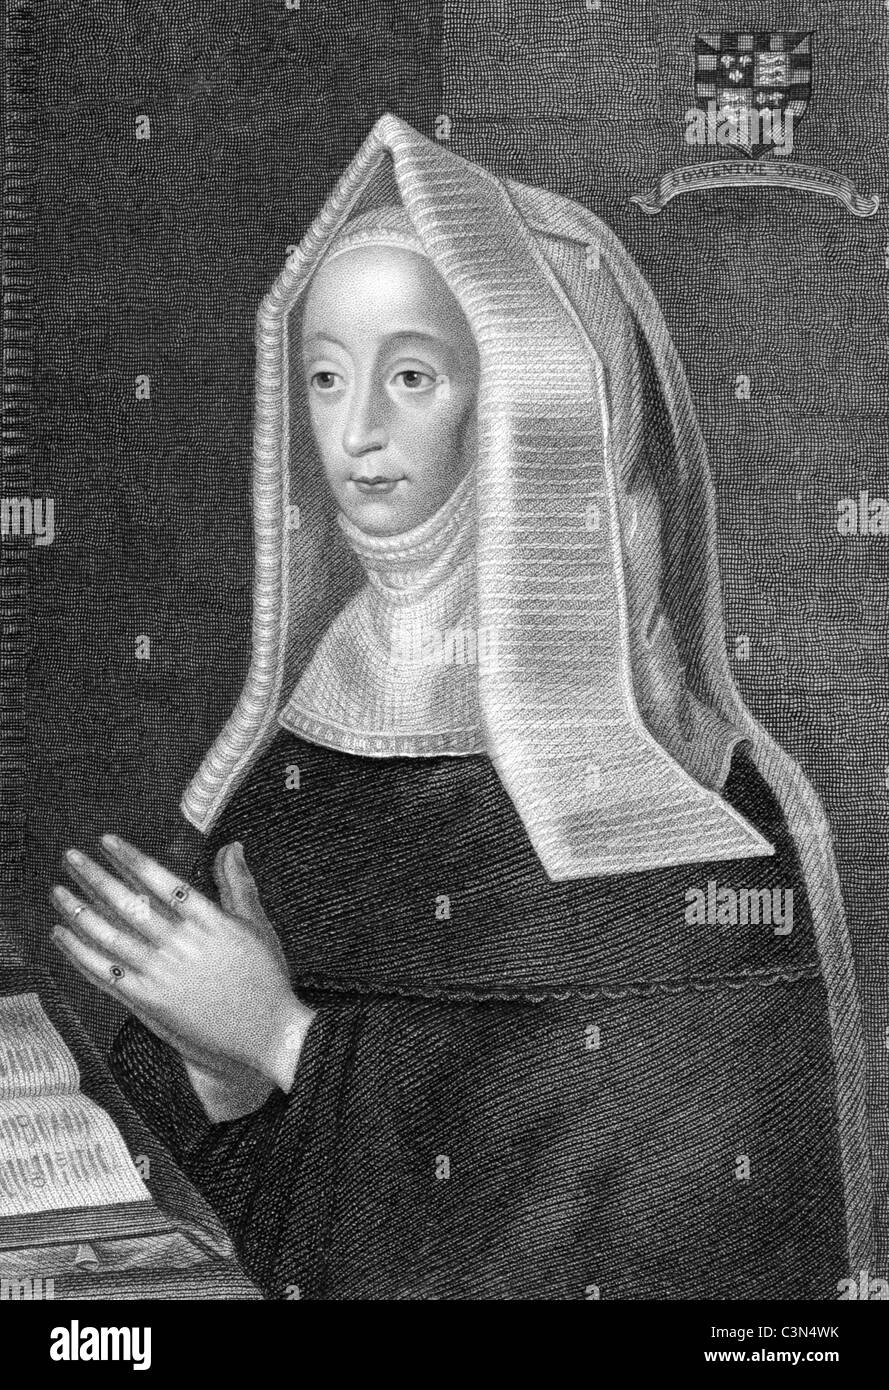 Lady Margaret Beaufort (1441/1443-1509) on engraving from 1838. Mother of King Henry VII and grandmother of King - Stock Image